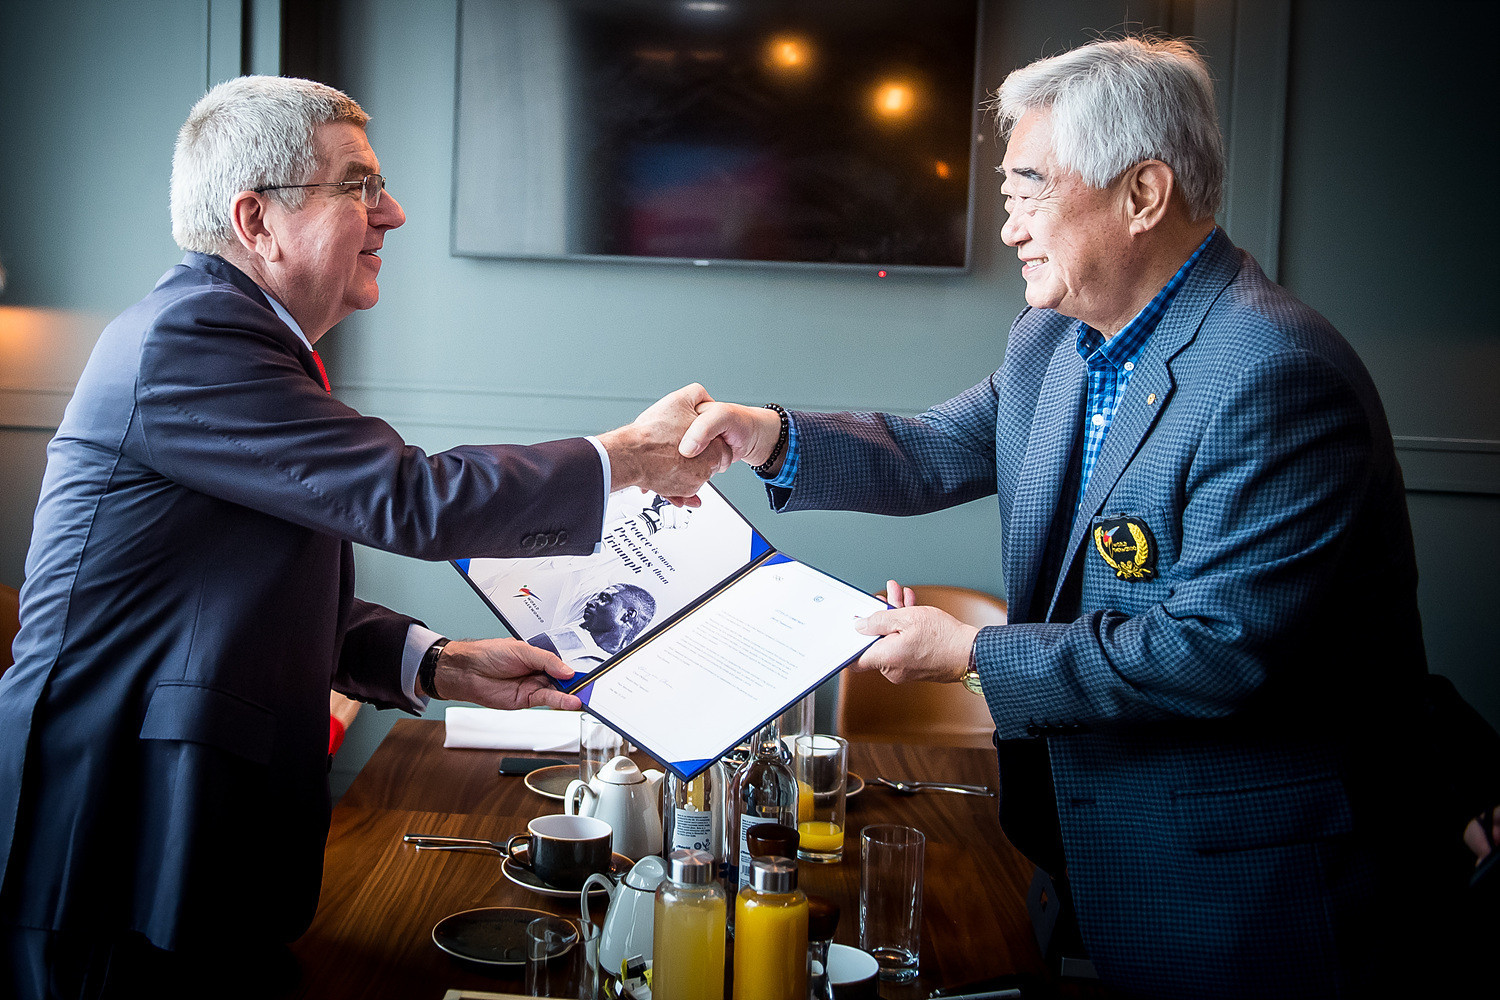 World Taekwondo President Choue joins Bach to sign environment pledge